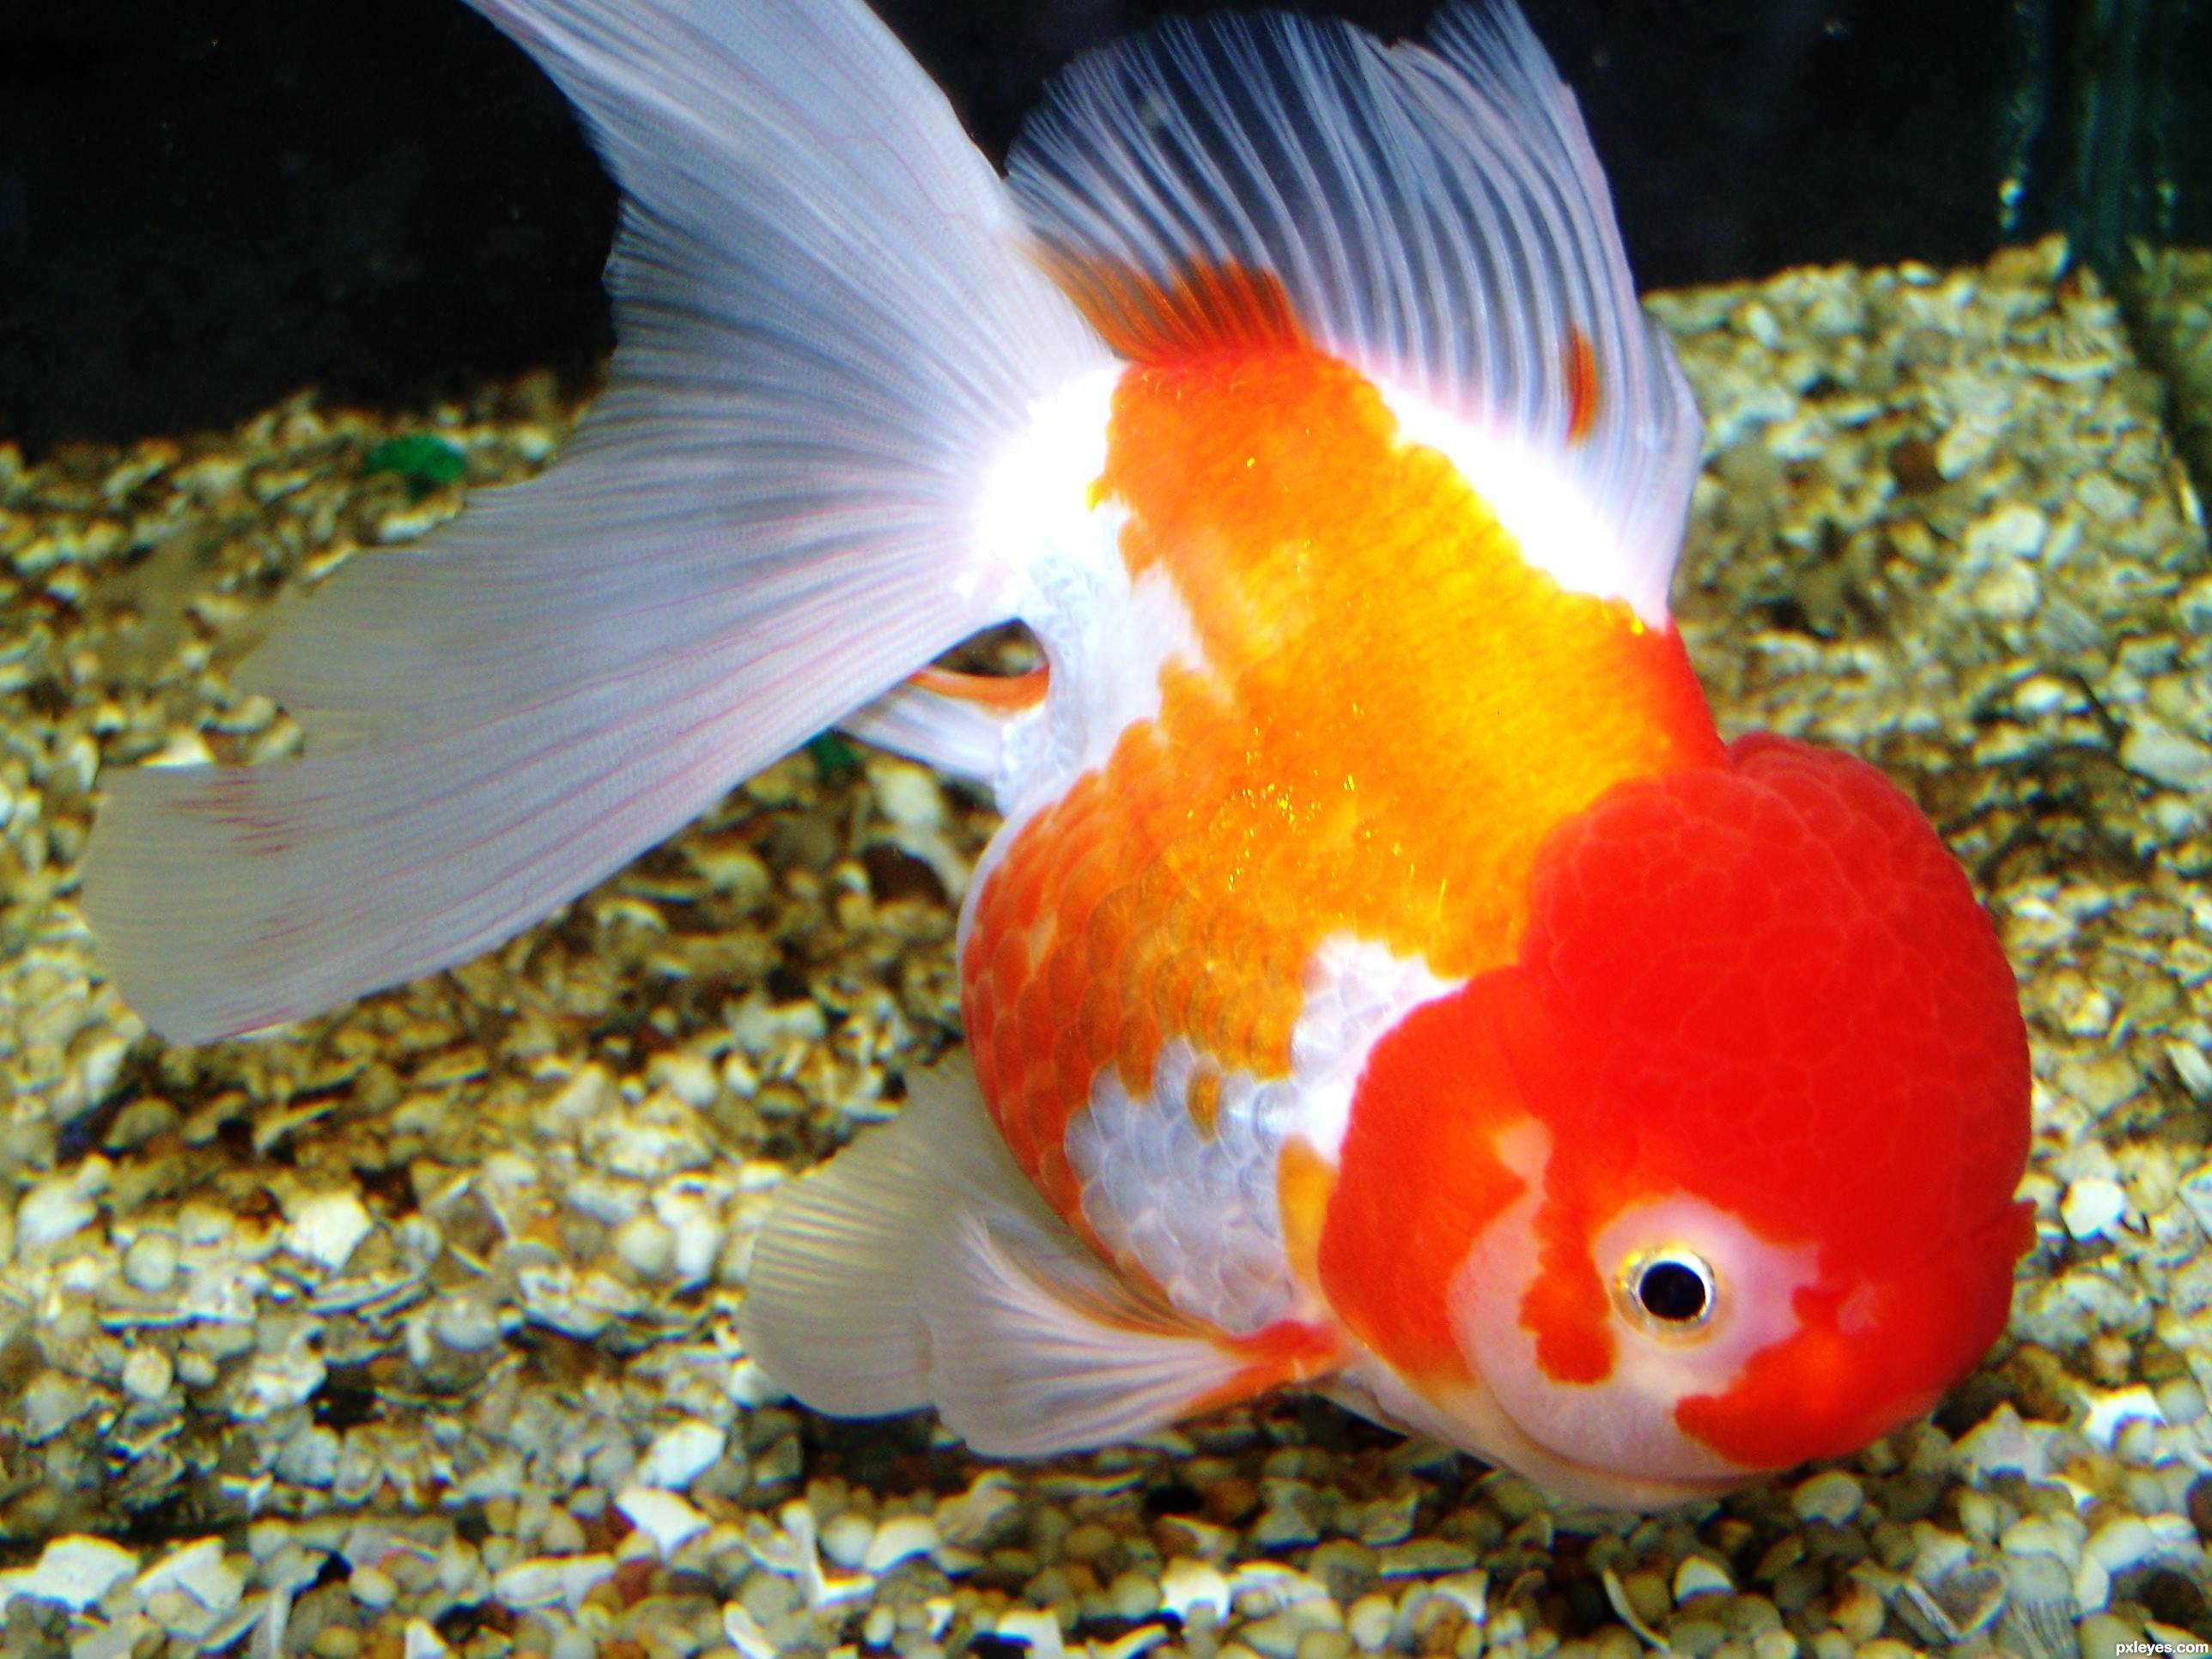 Oranda picture, by Sheridan for: everything fish 2 photography contest ...